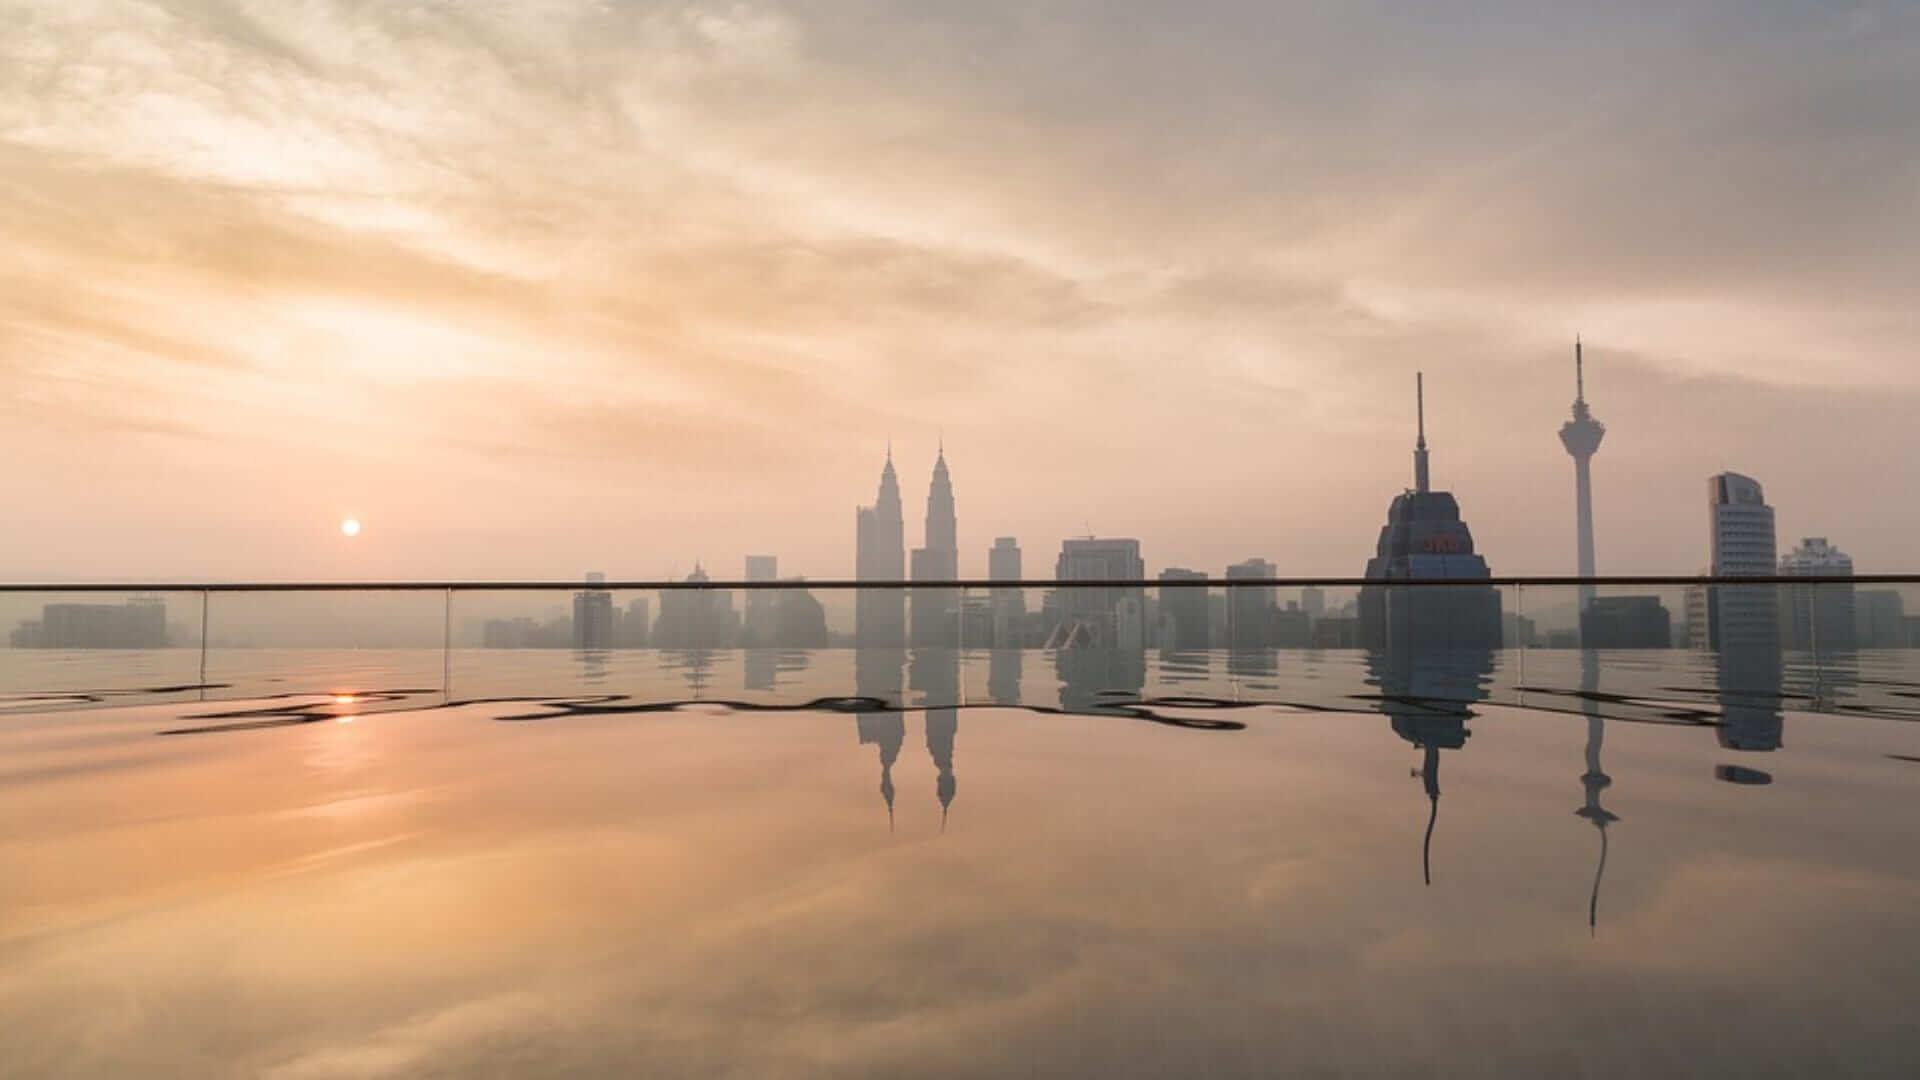 A sky pool during sunset with a view of buildings in Kuala Lumpur.